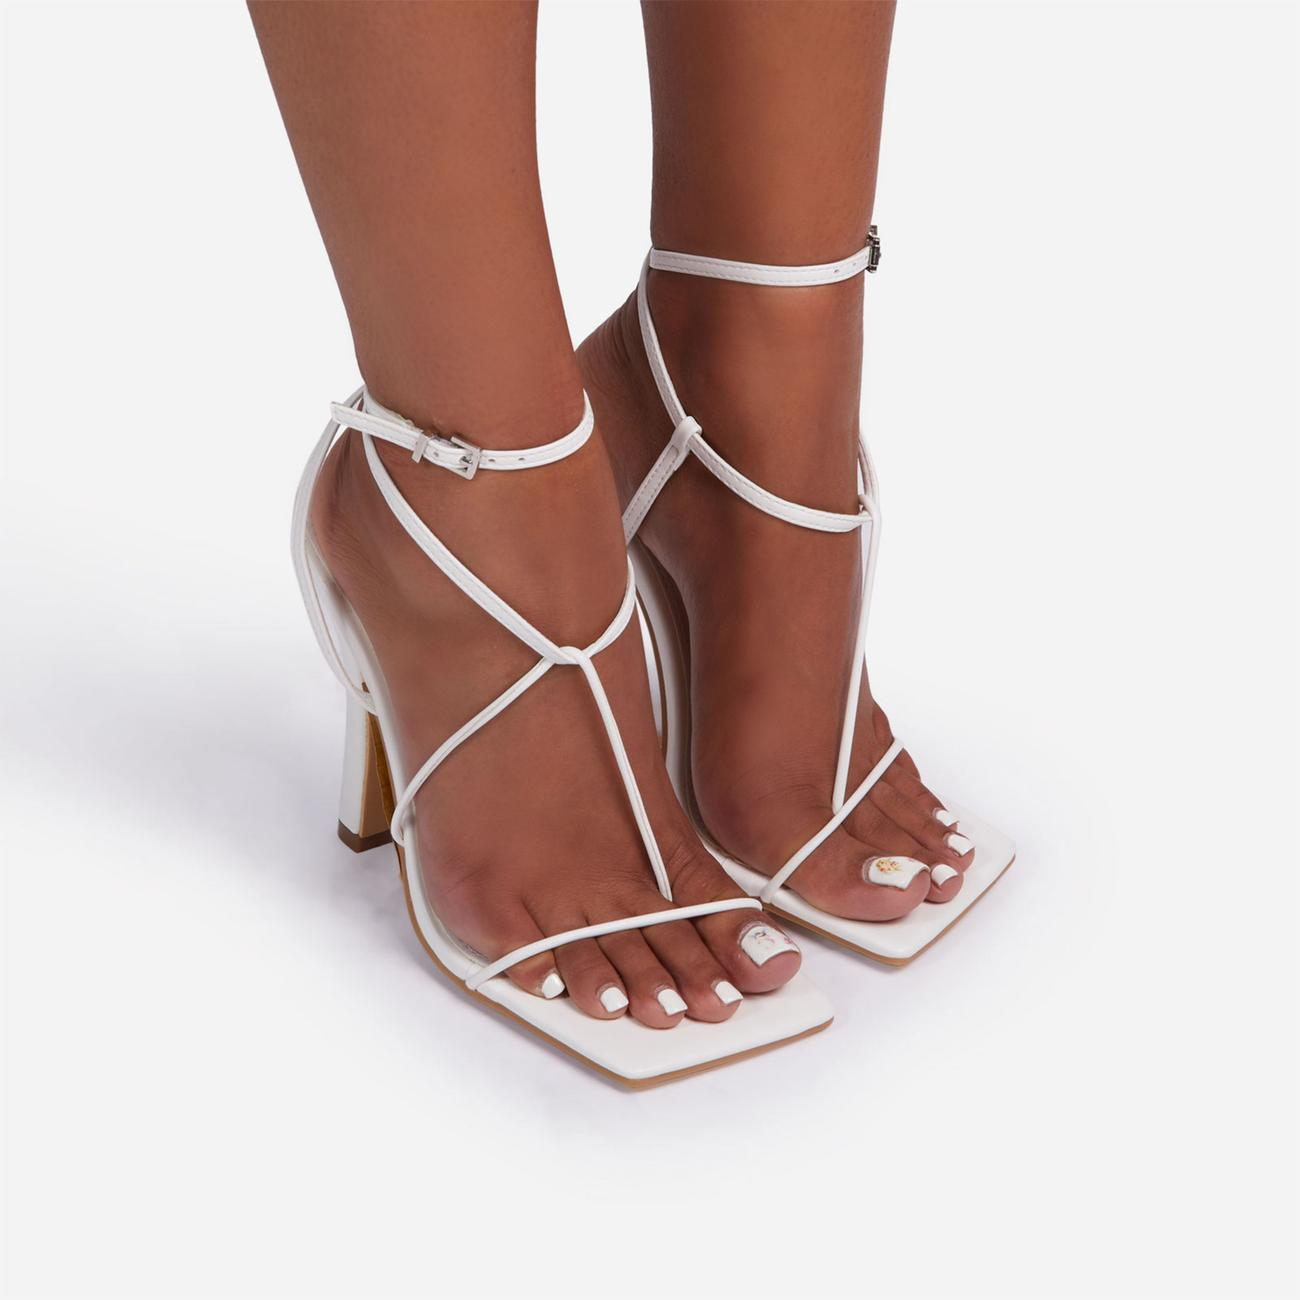 Glambition Strappy Square Toe Track Sole Heel In White Faux Leather Image 3